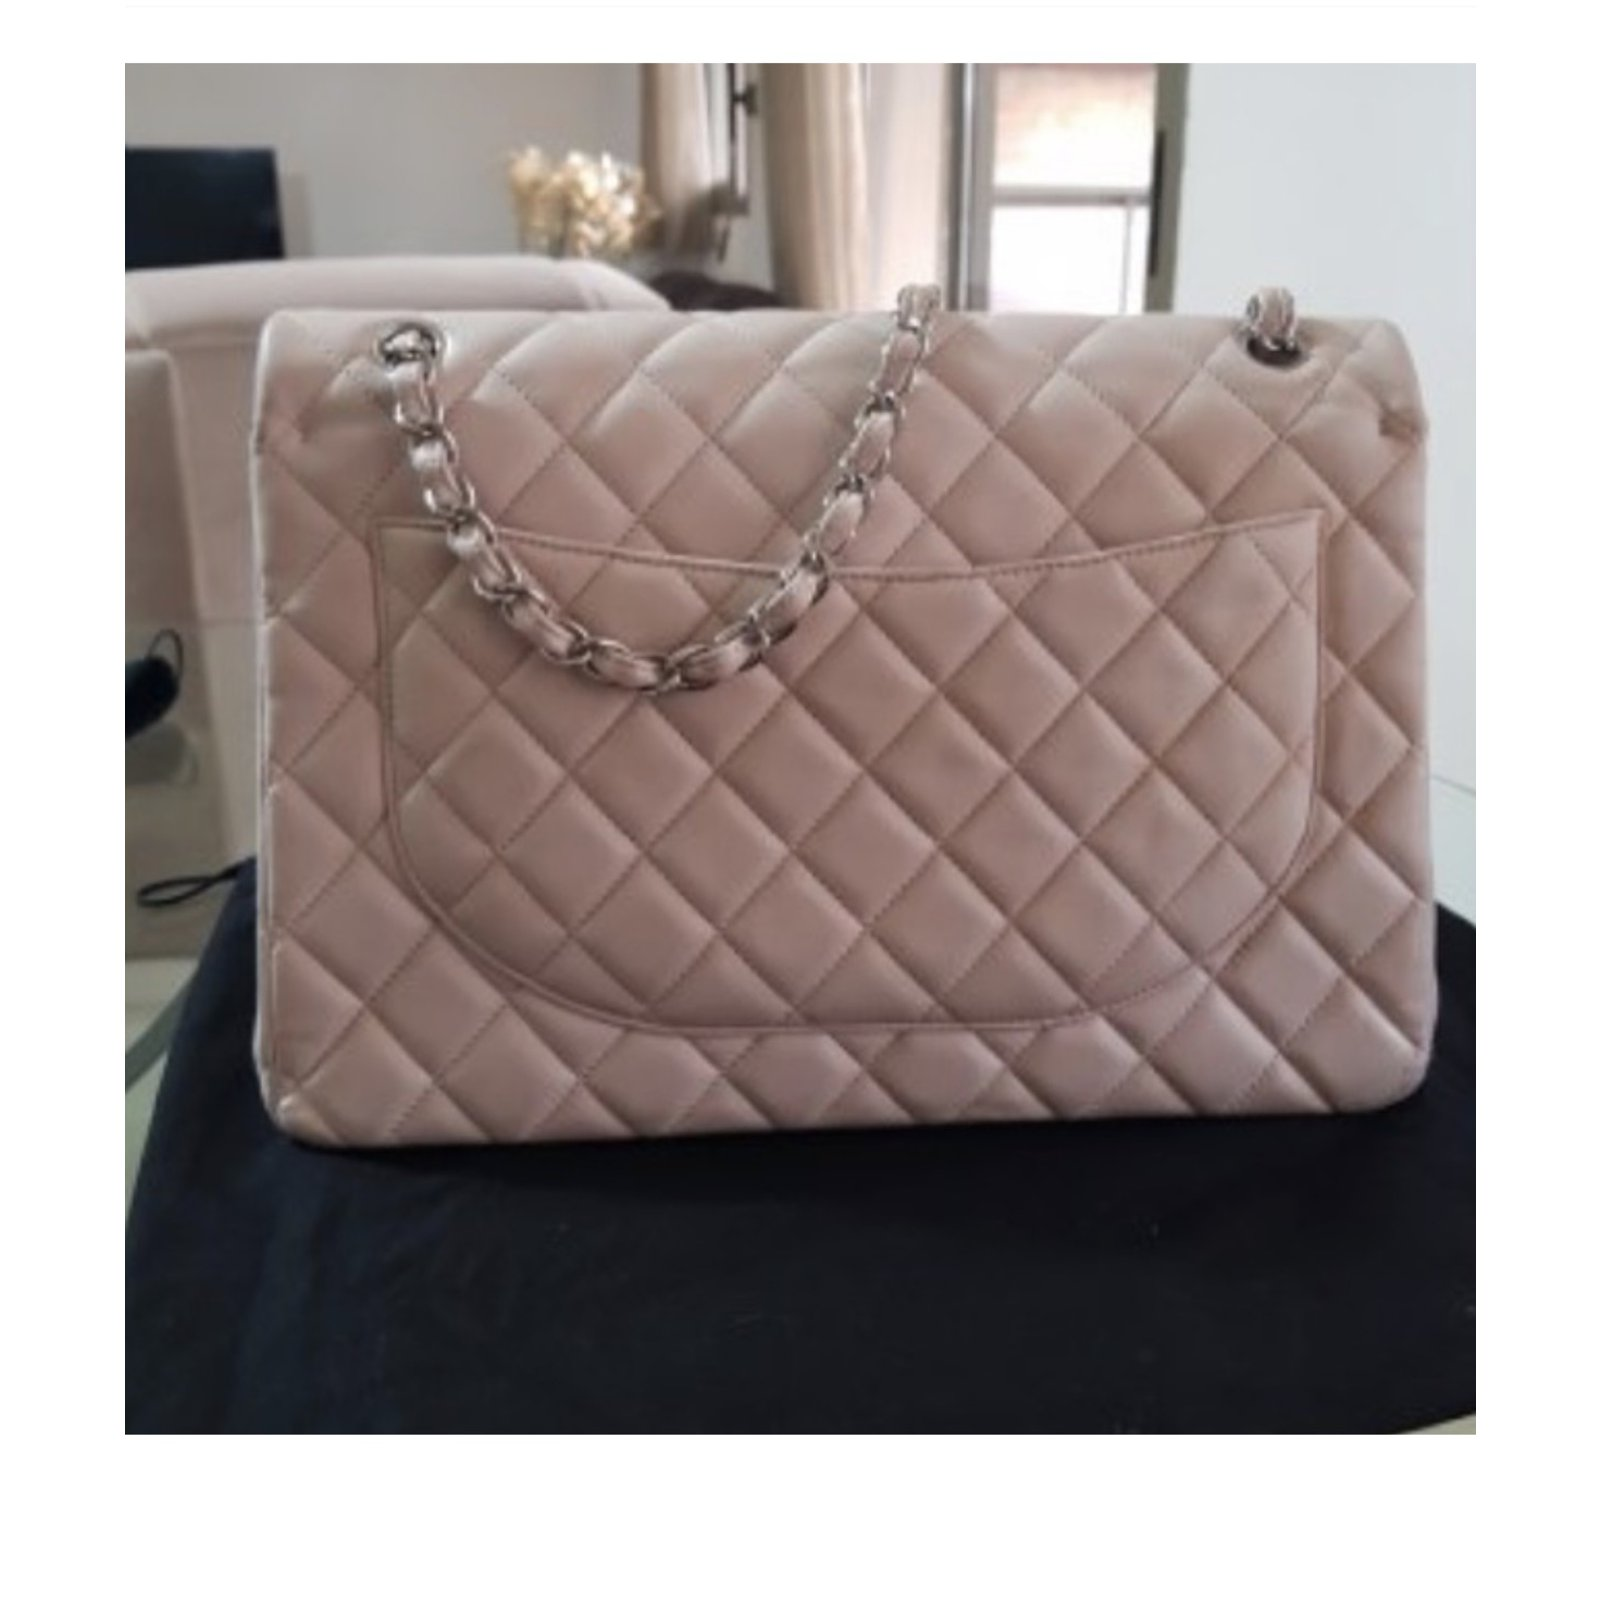 46844e3bd0fc Chanel Timeless maxi lined flap Handbags Leather Pink ref.76328 - Joli  Closet